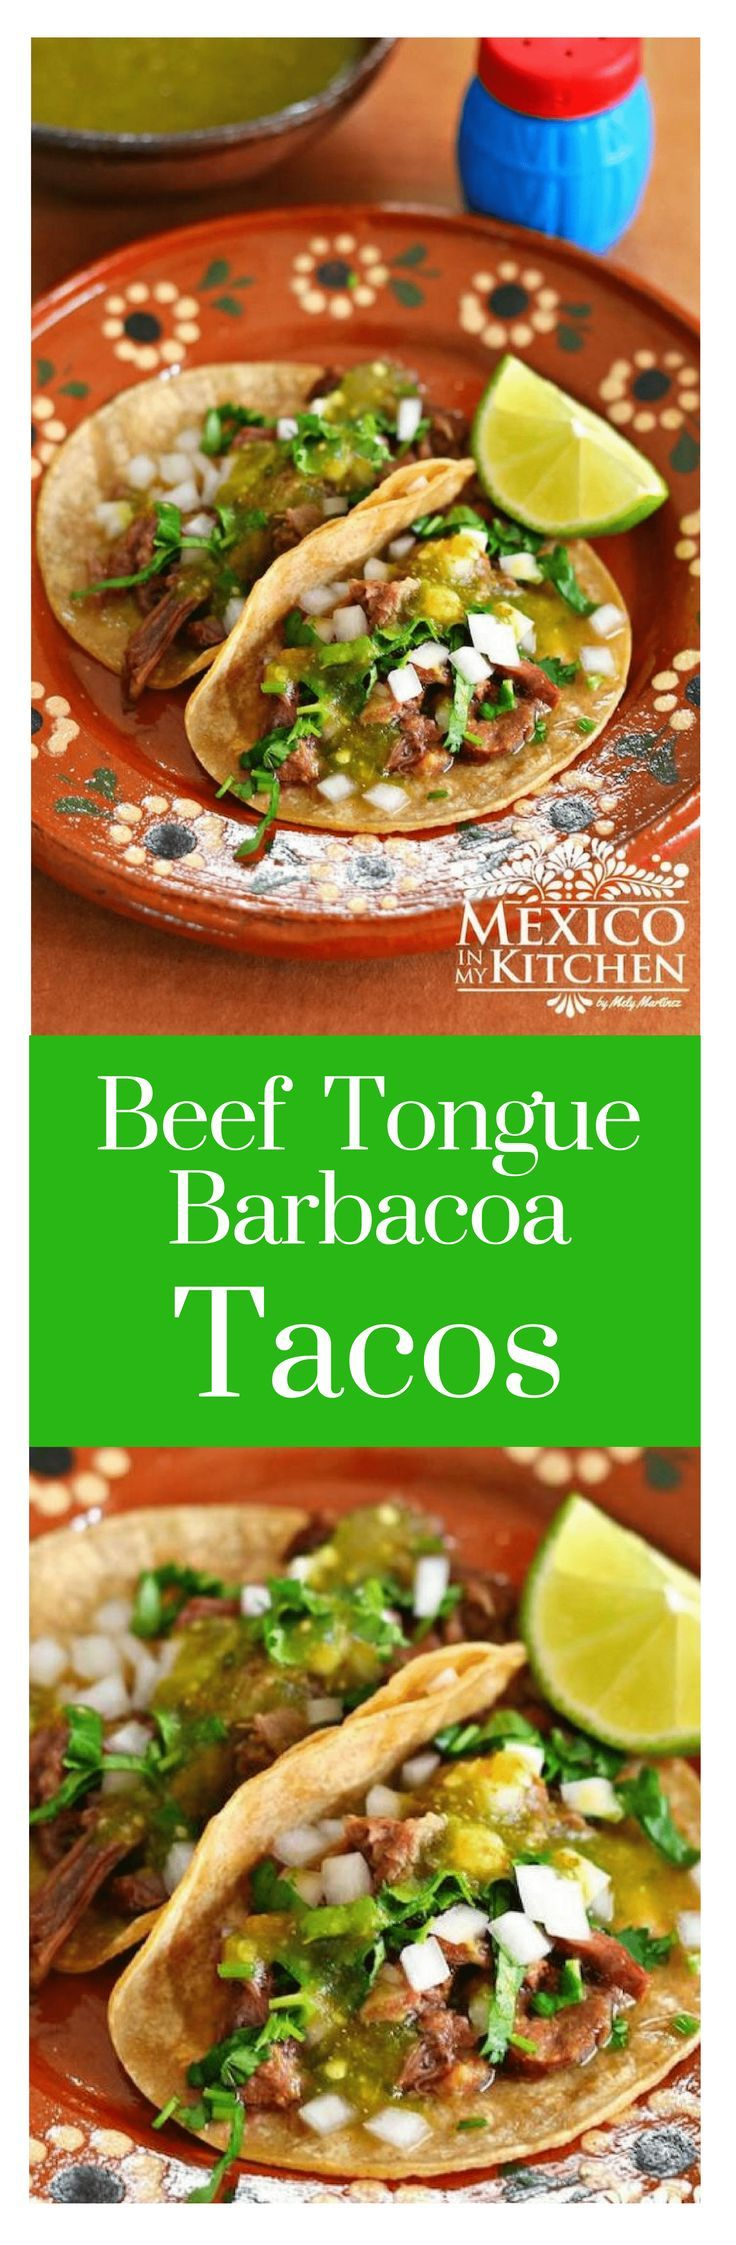 This recipe is using the Crock pot; it is a good idea to do it overnight and have your barbacoa ready for breakfast, especially on Sundays, like we do in northern Mexico.#mexicanrecipes #mexicanfood #tacos #kitchen #homecook